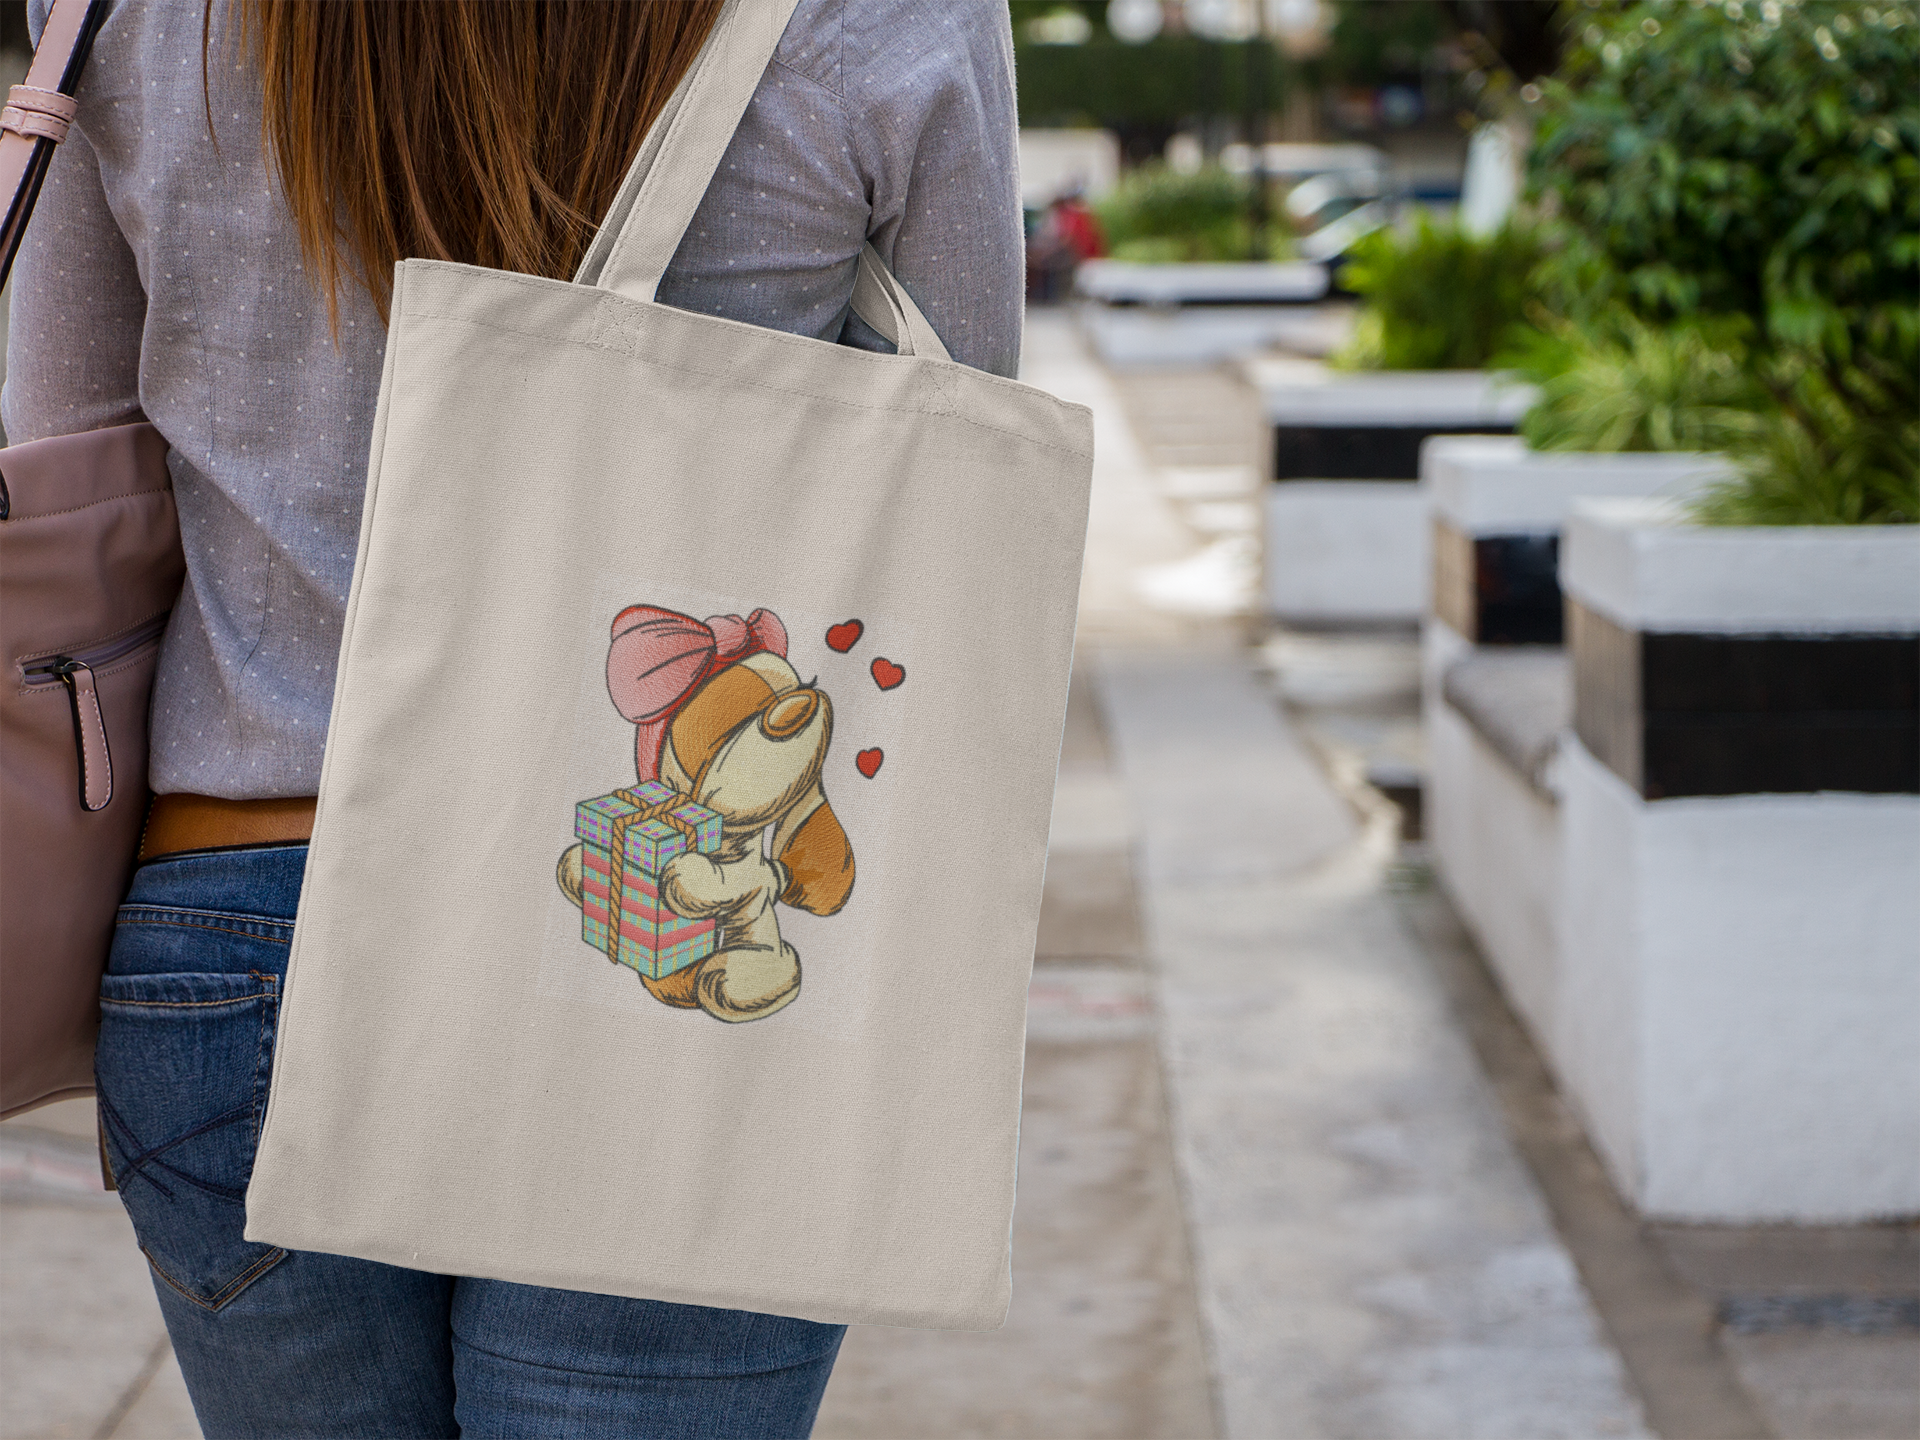 Embroidered bag with Spaniel with gift design